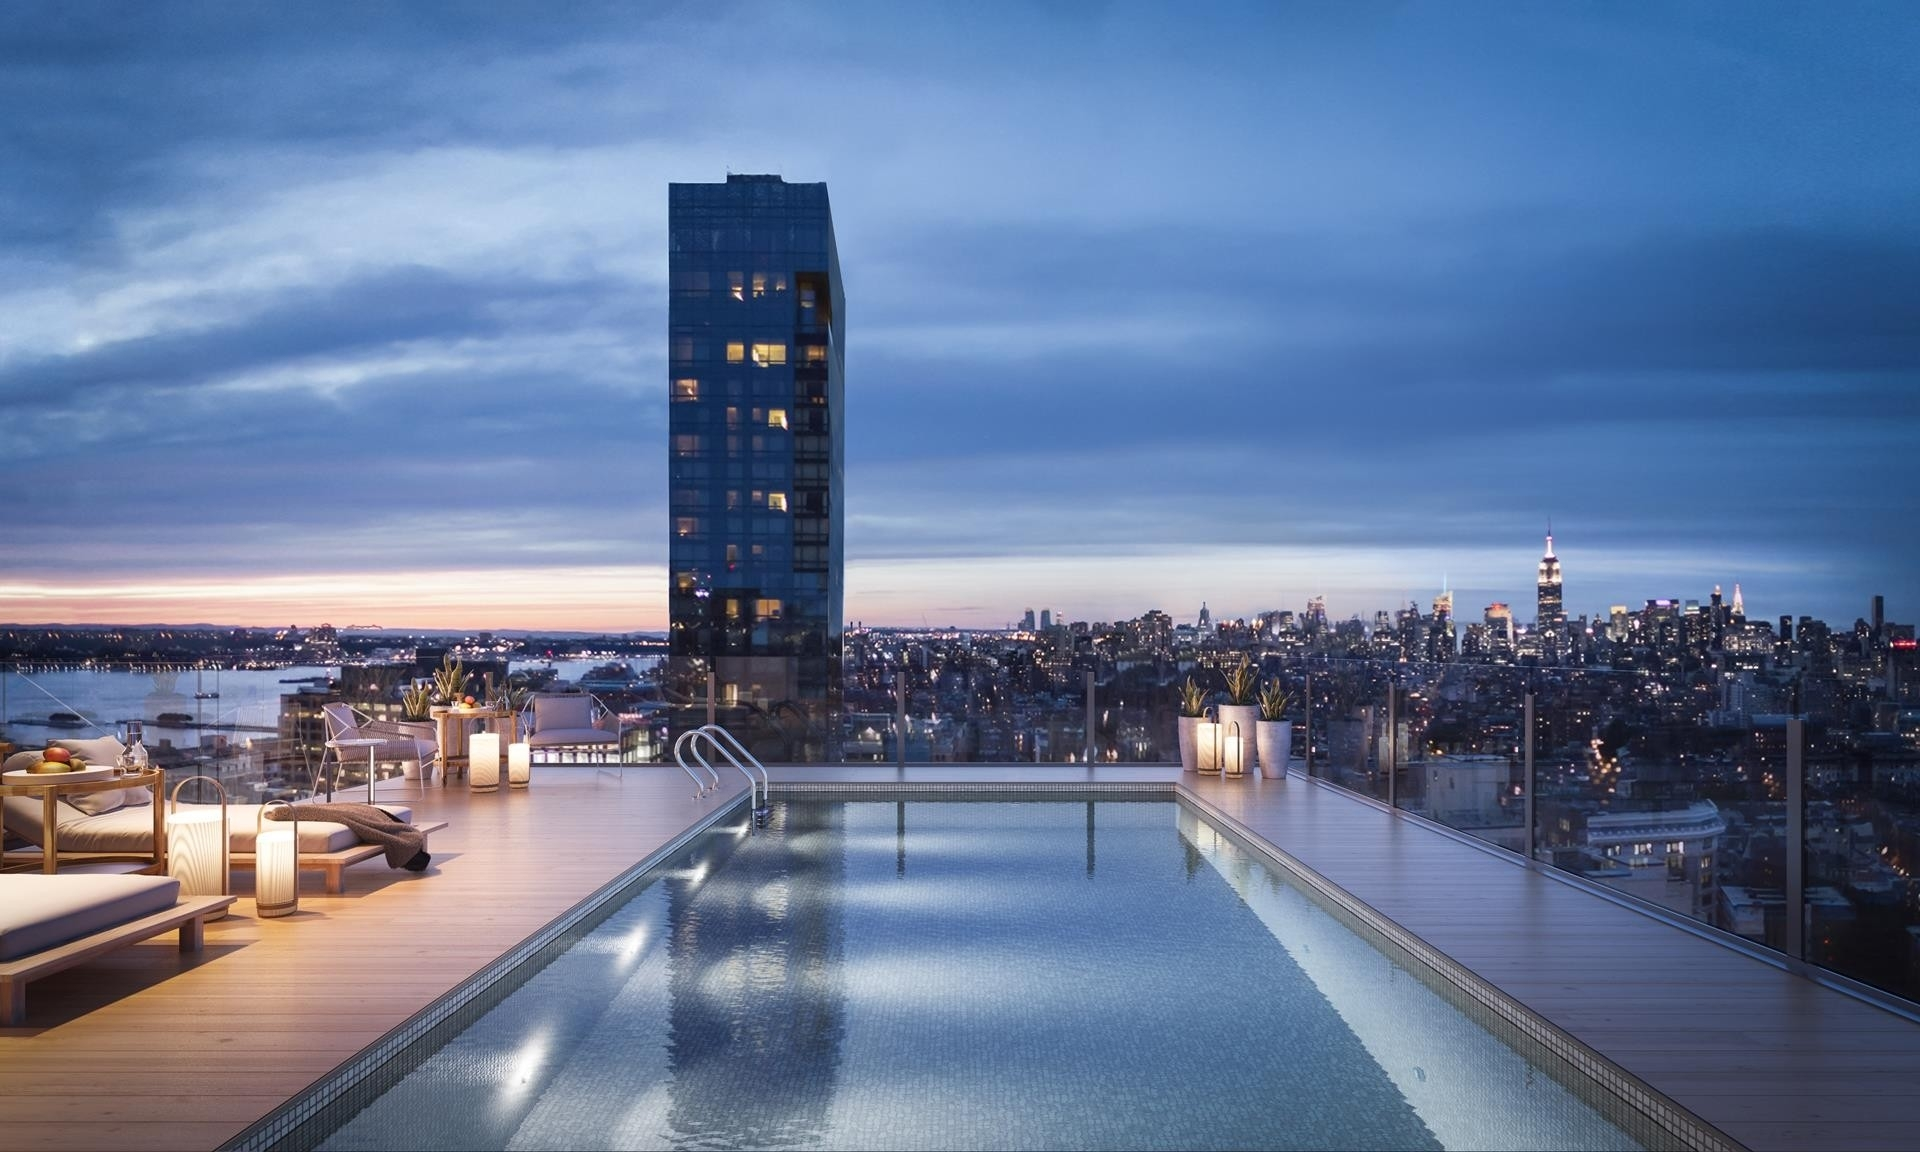 3. Condominiums for Sale at 565 Broome St, SOUTHPHB Hudson Square, New York, NY 10013